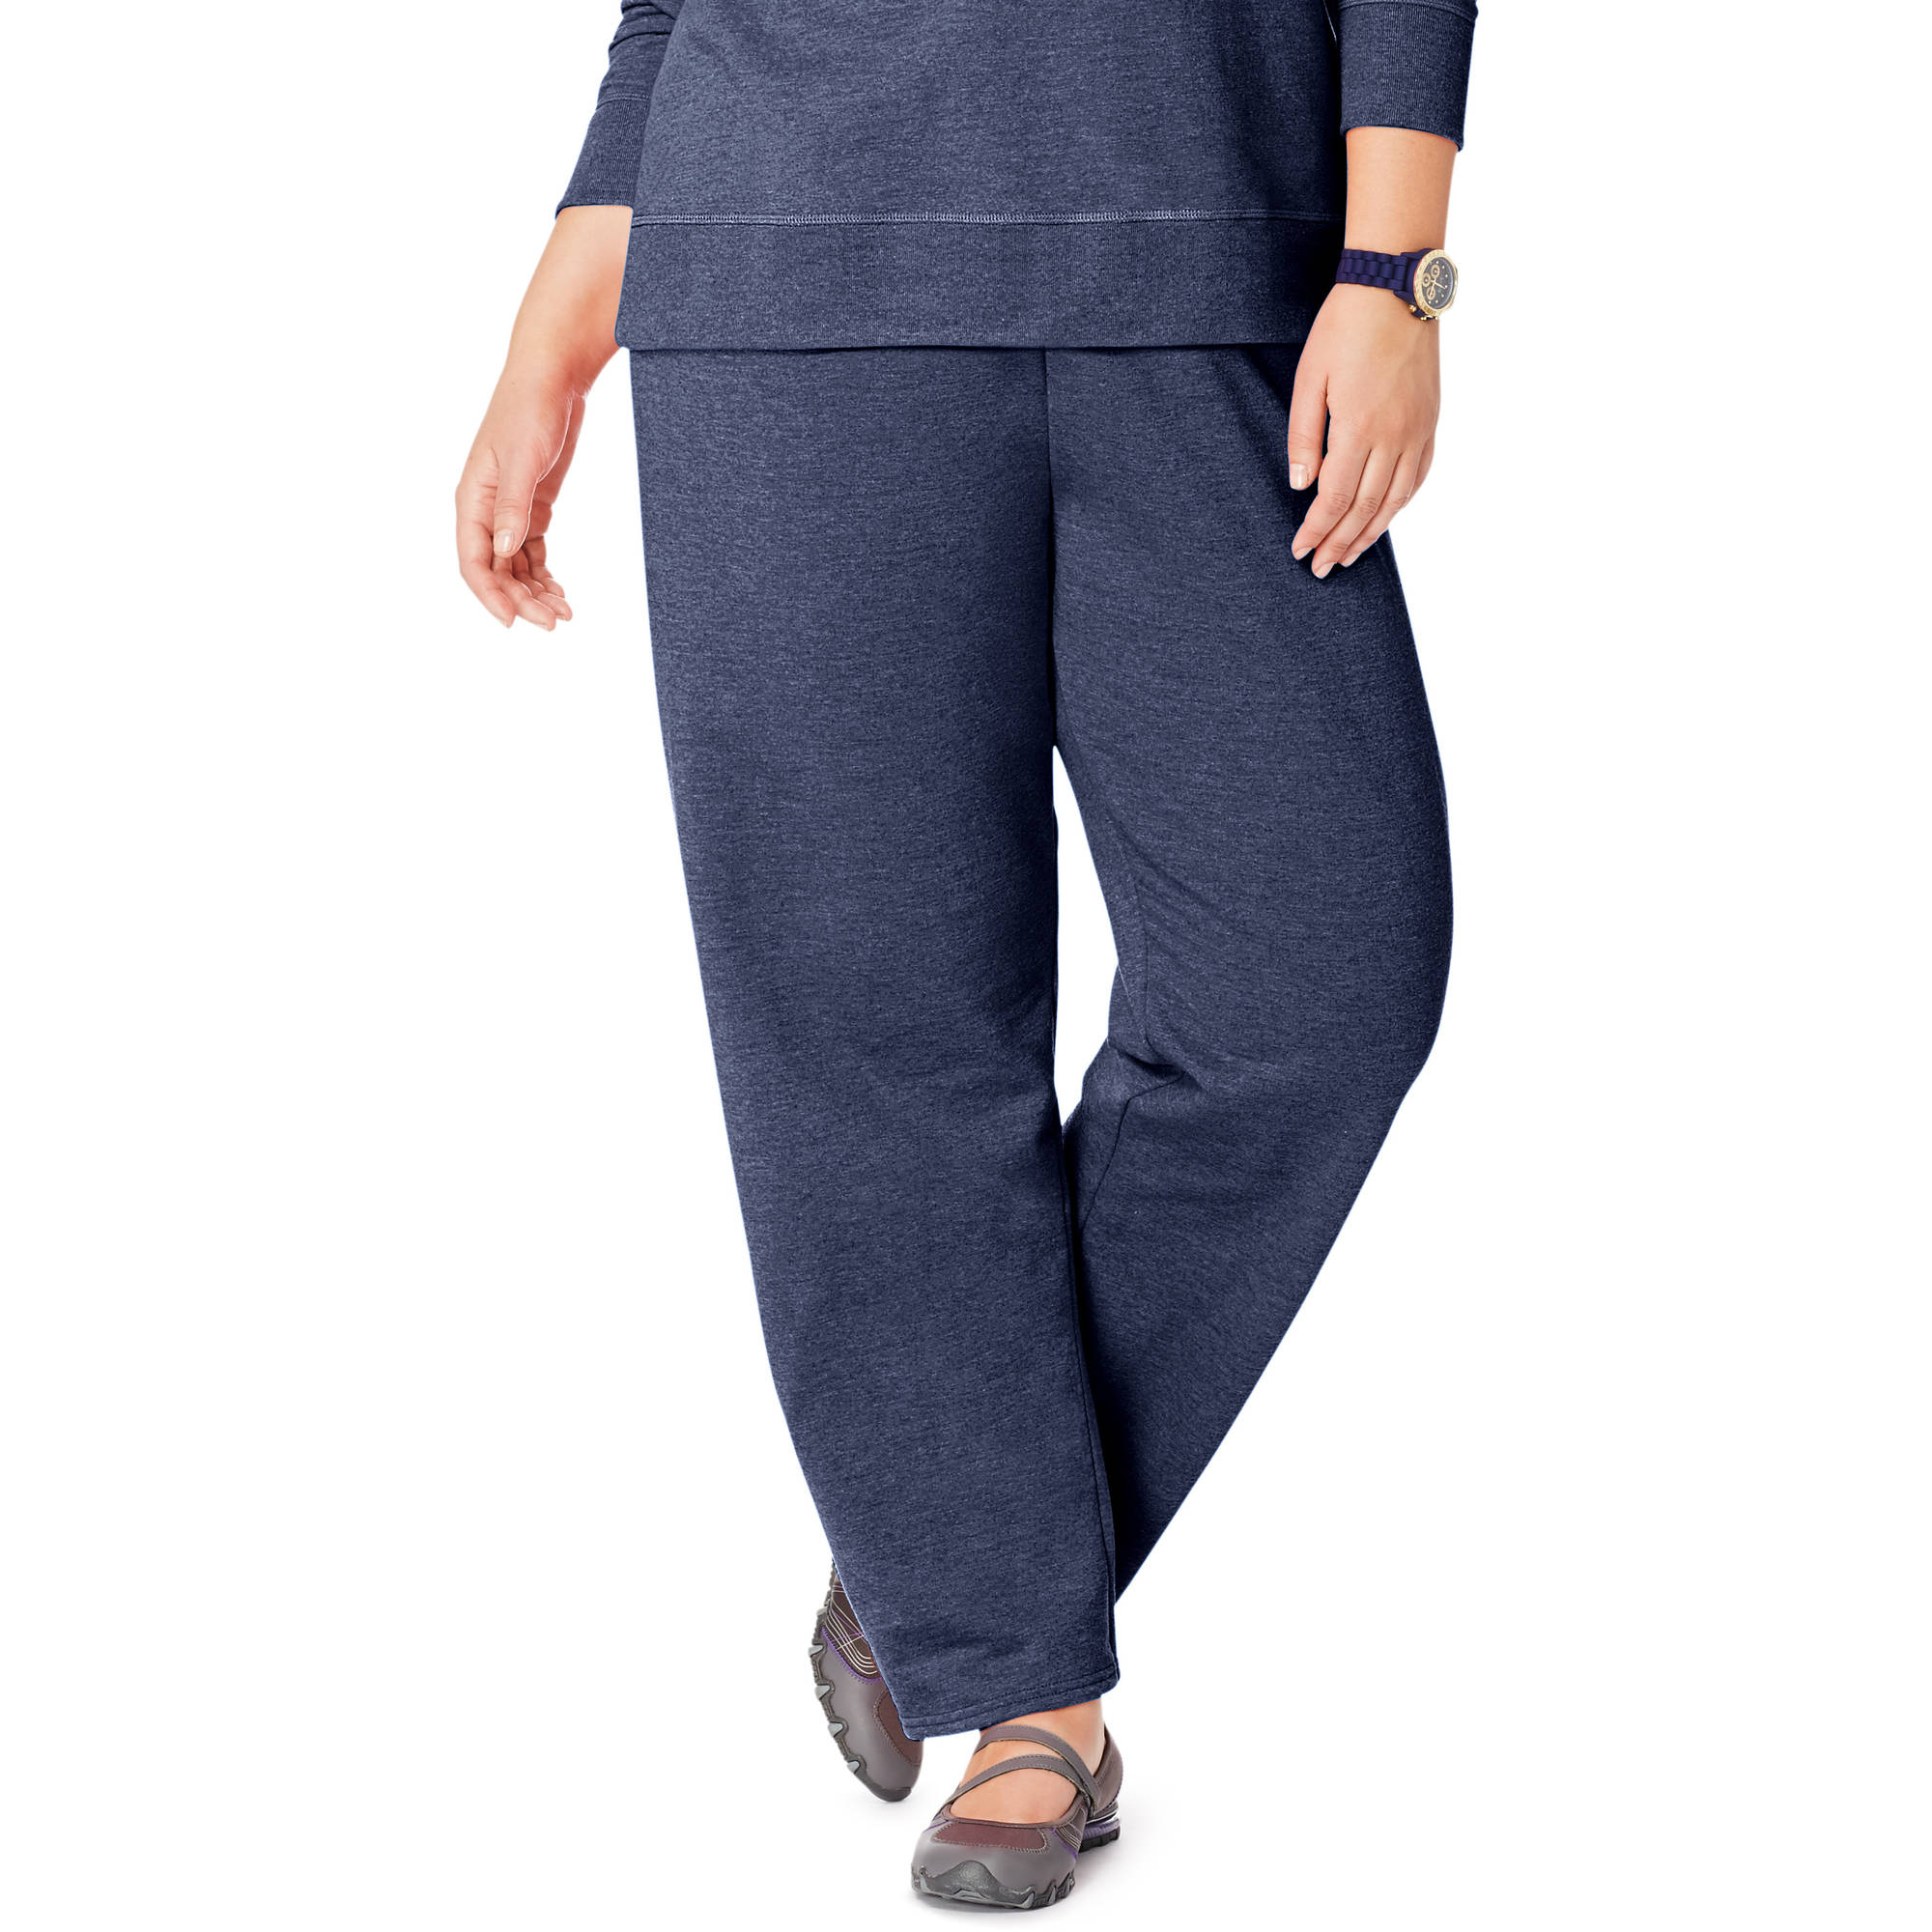 Just My Size Women's Plus Size Fleece Sweatpant, Up to size 5X